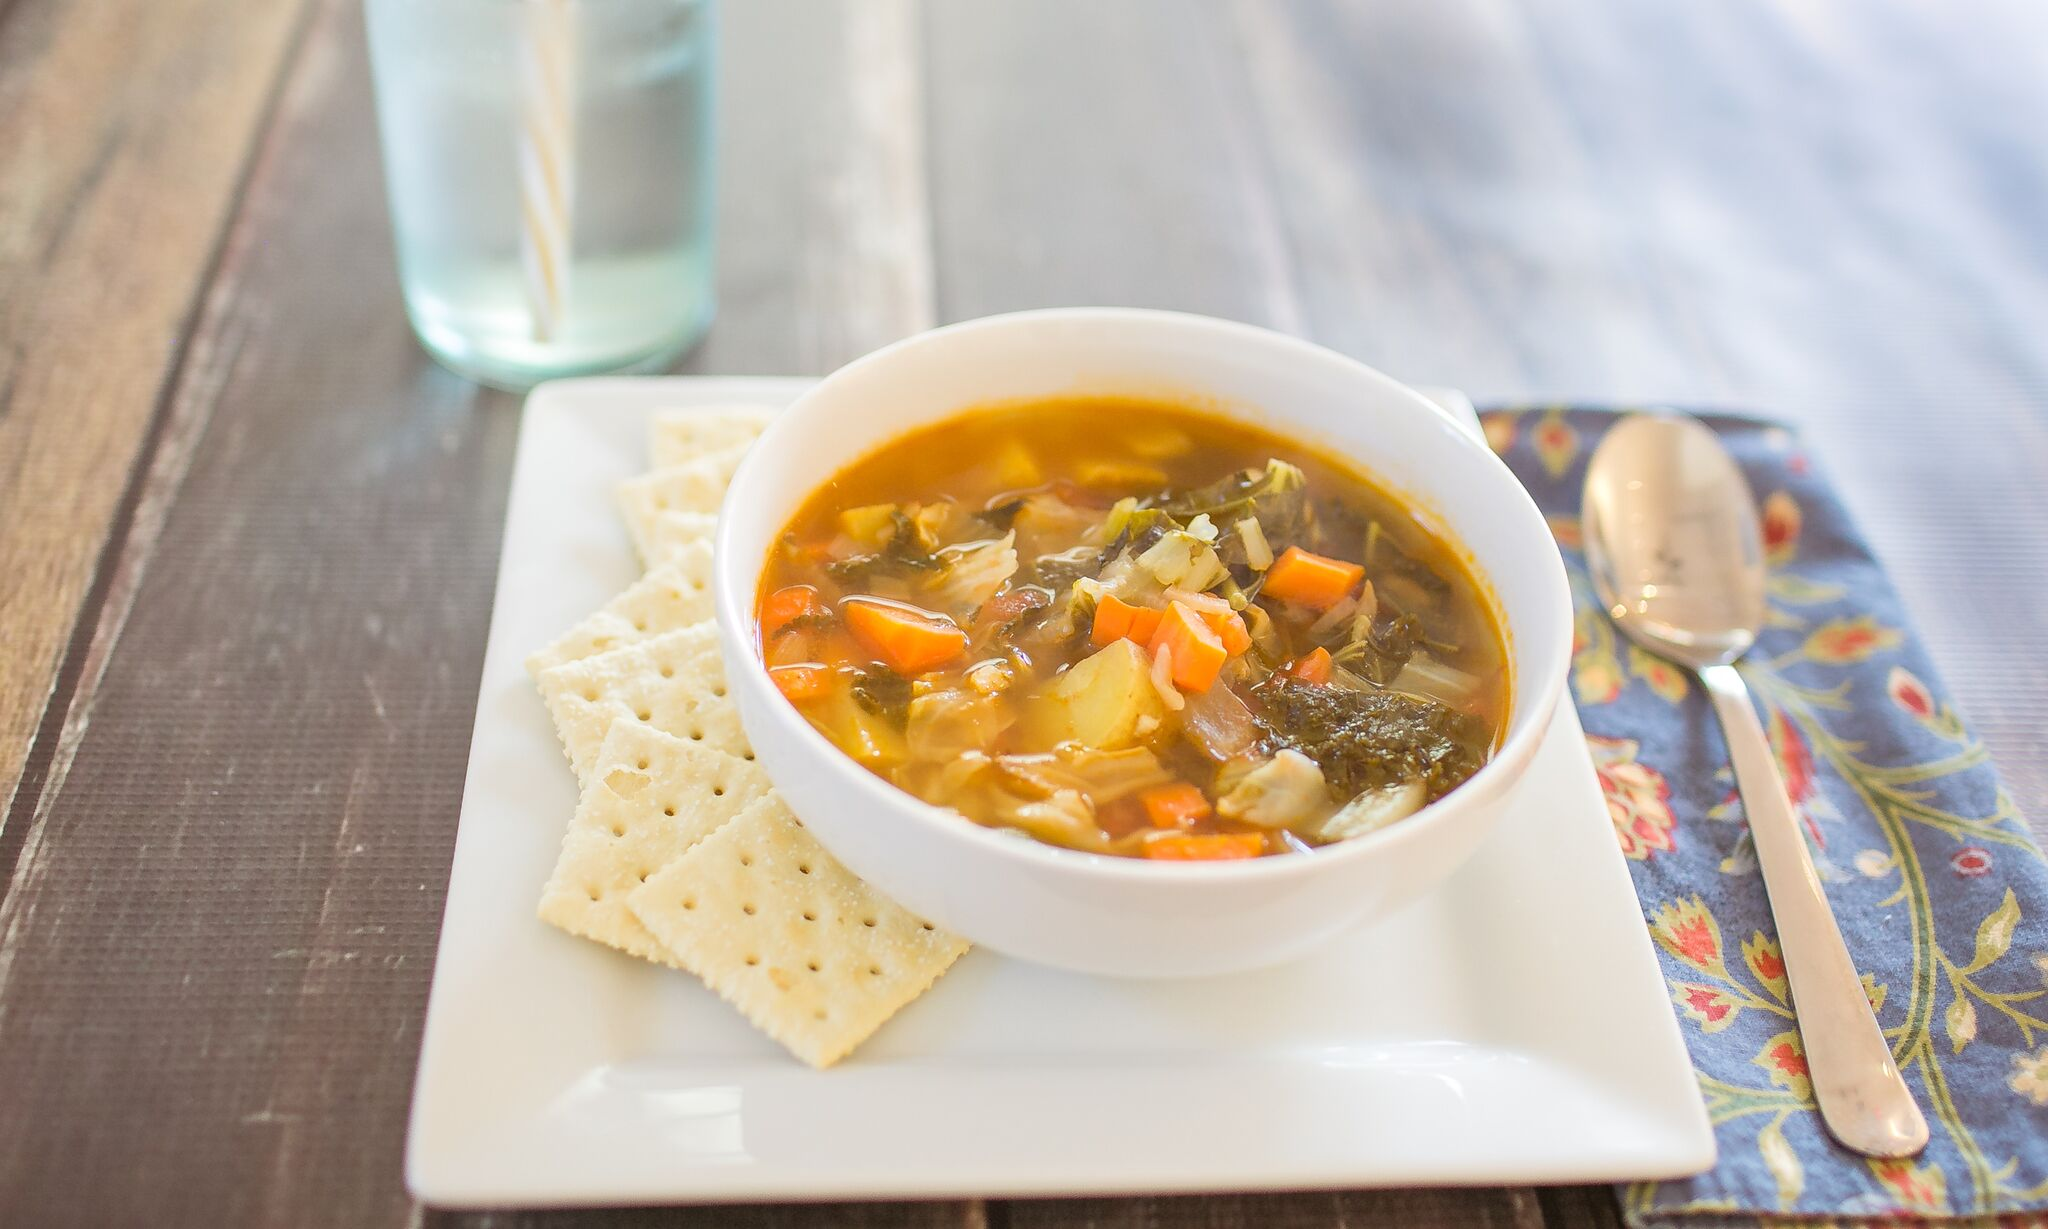 Serve finished winter diet soup with crunchy crackers on the side.